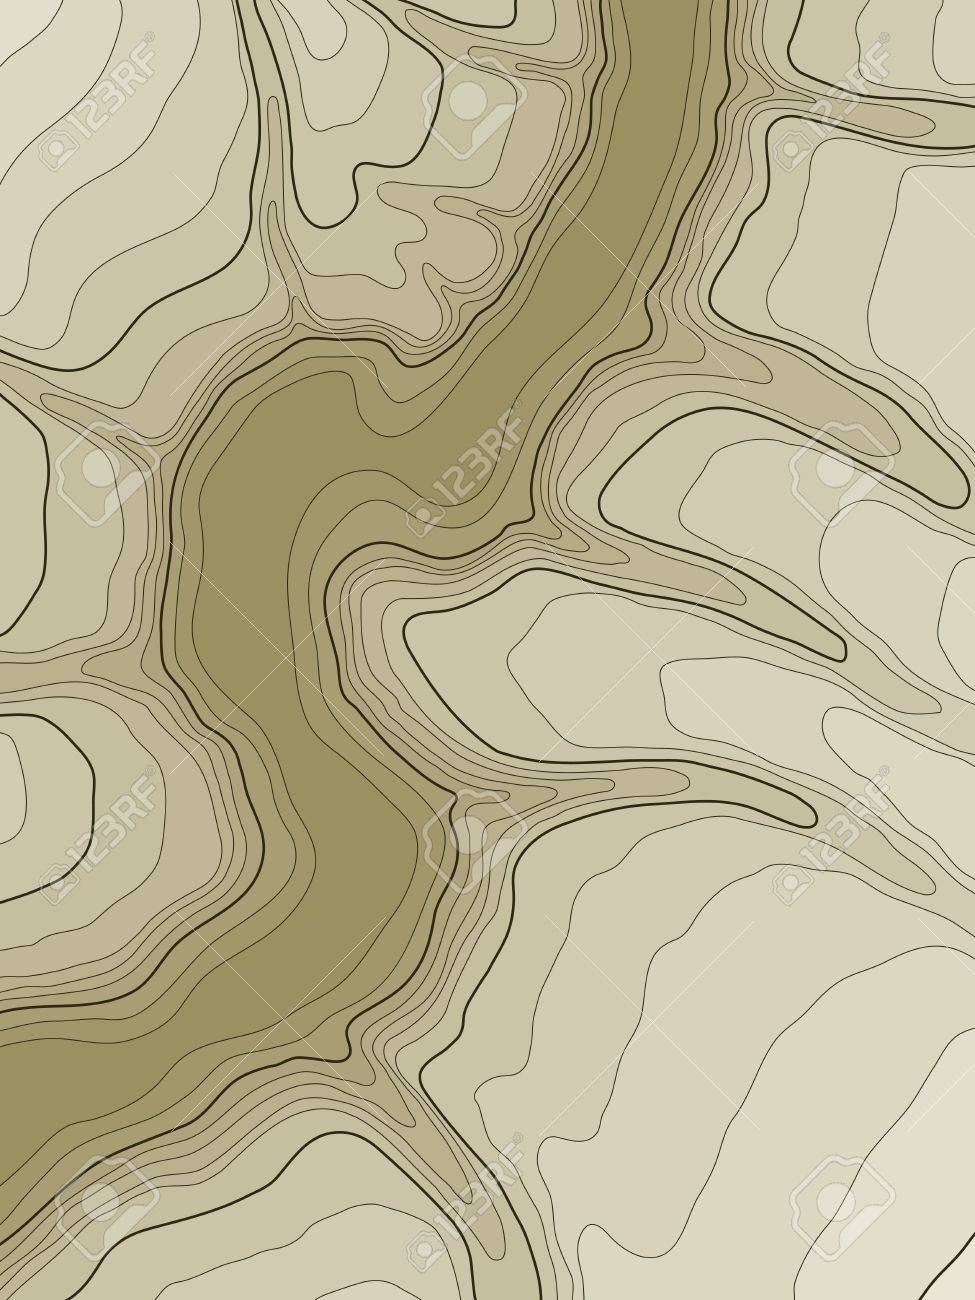 abstract topographic map in brown colors - 11041393